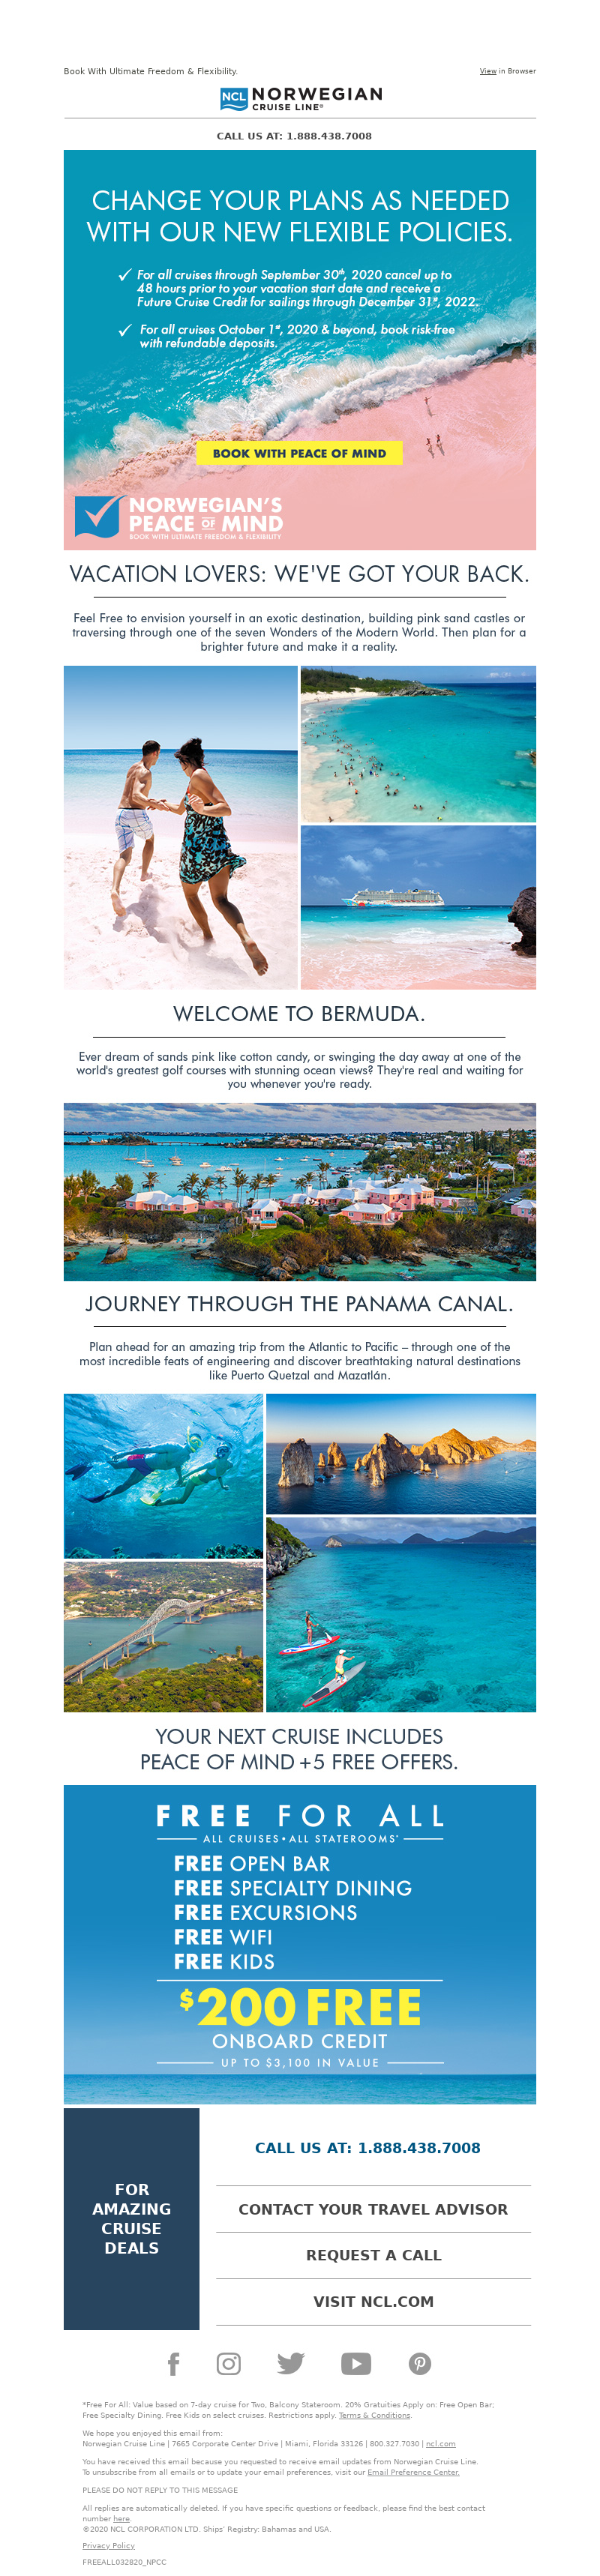 Book With Ultimate Freedom & Flexibility. View in Browser Norwegian Cruise